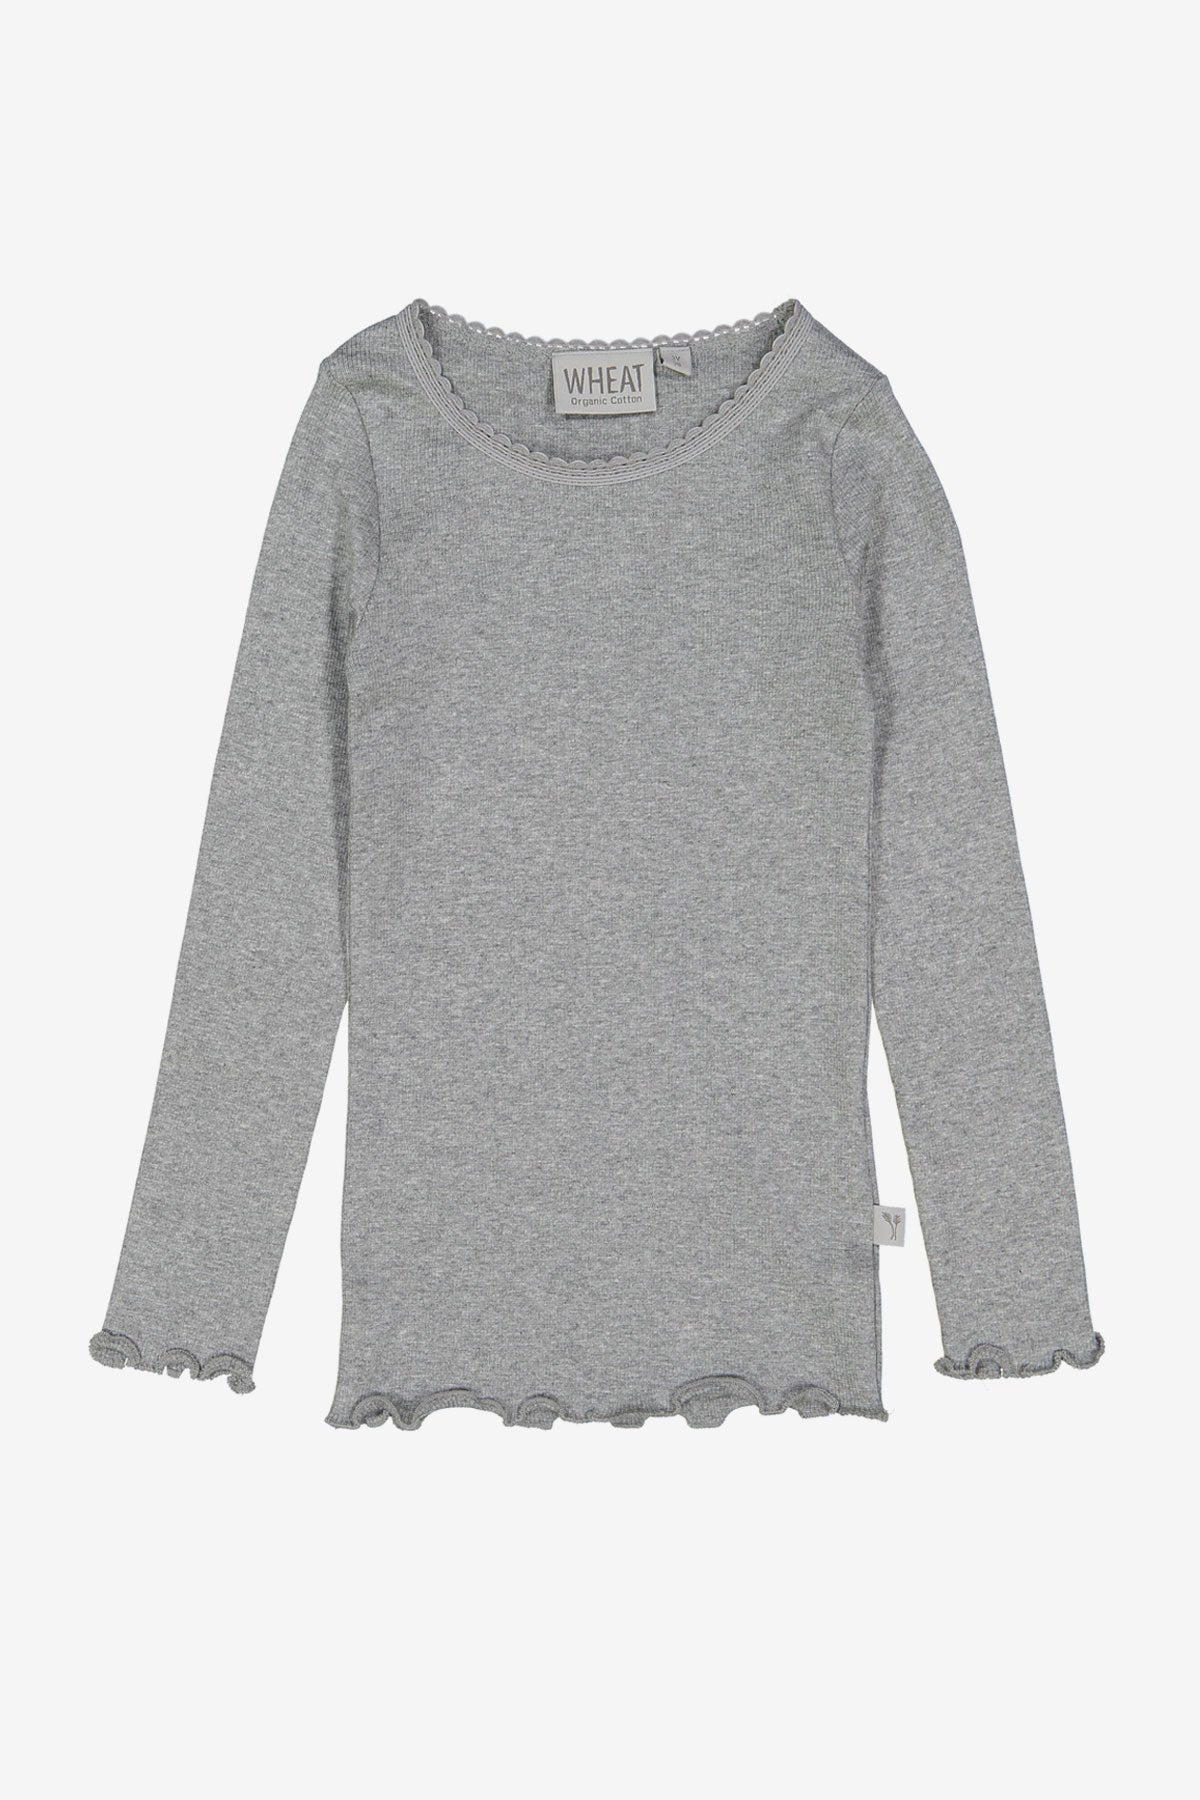 Wheat Long Sleeve Rib Tee - Grey